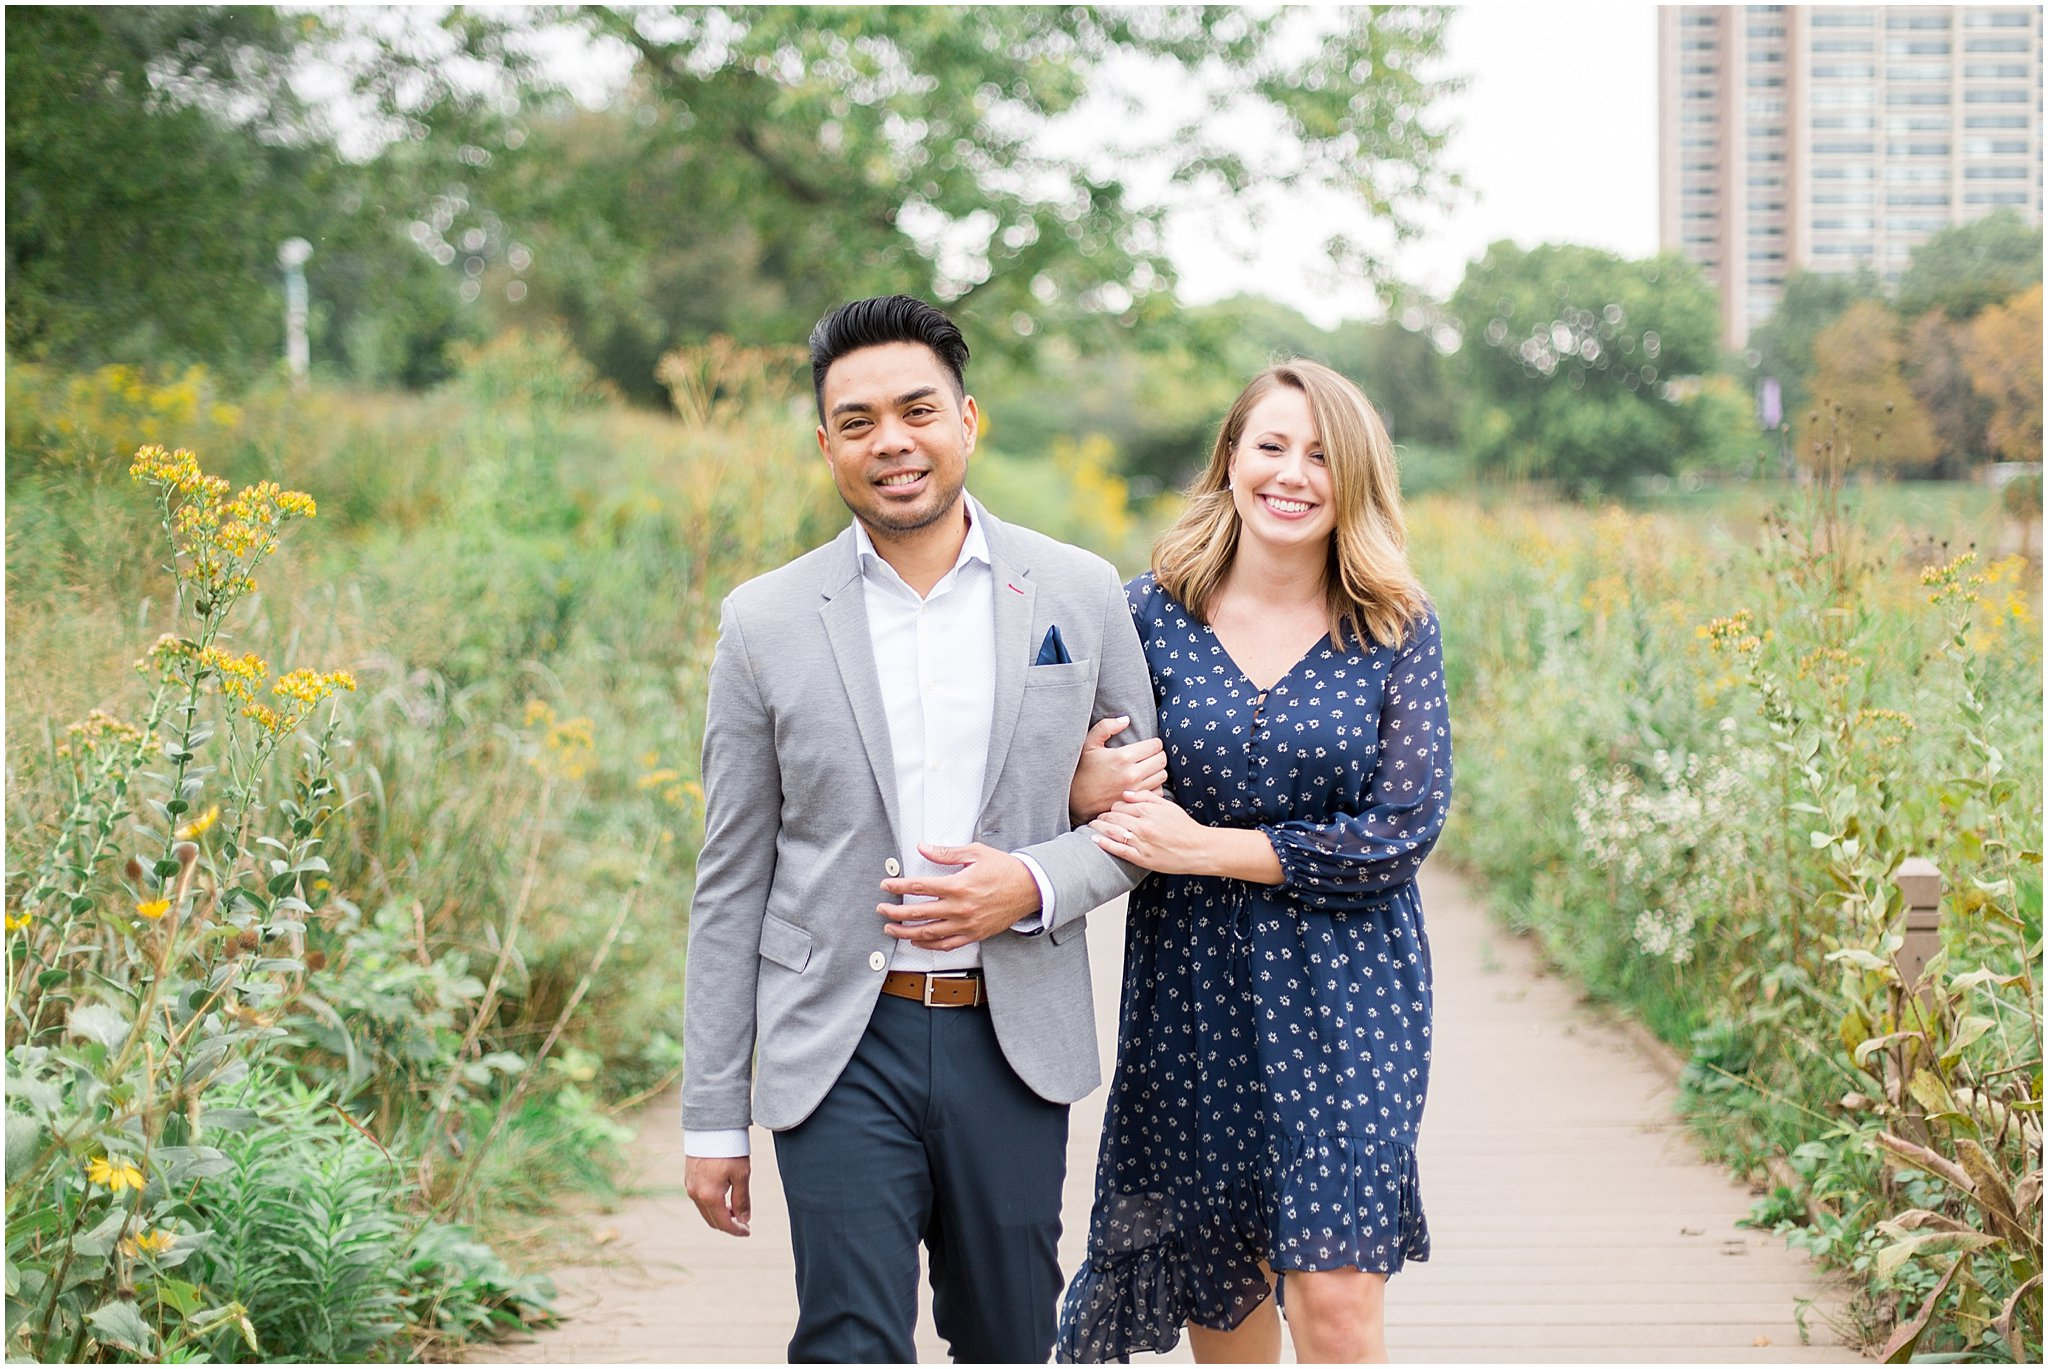 lincoln-park-zoo-engagement-session_0017.jpg